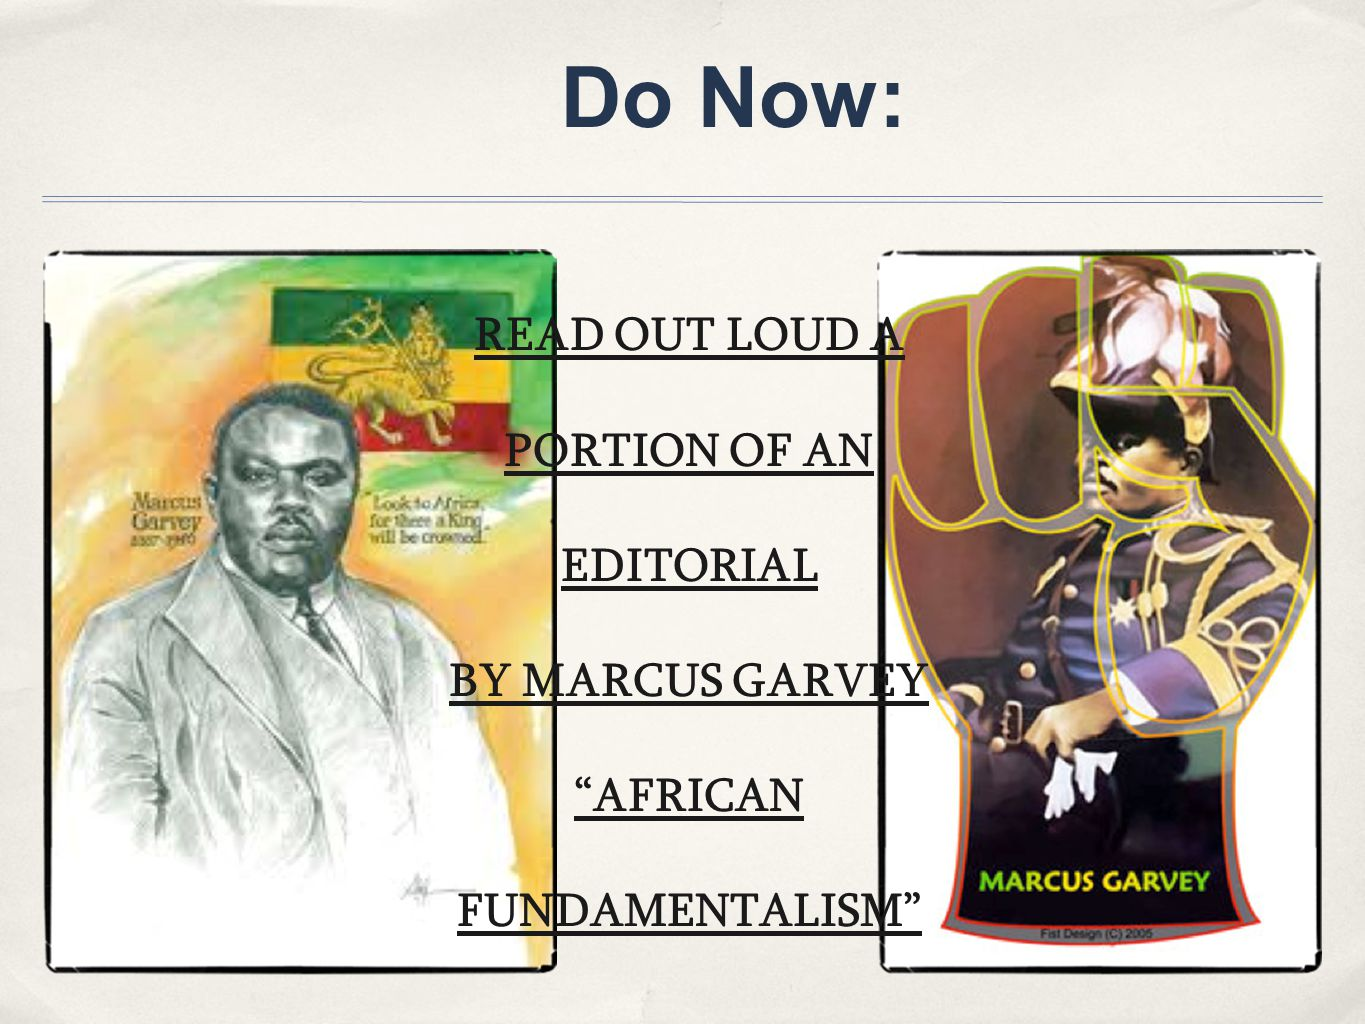 READ OUT LOUD A PORTION OF AN EDITORIAL AFRICAN FUNDAMENTALISM